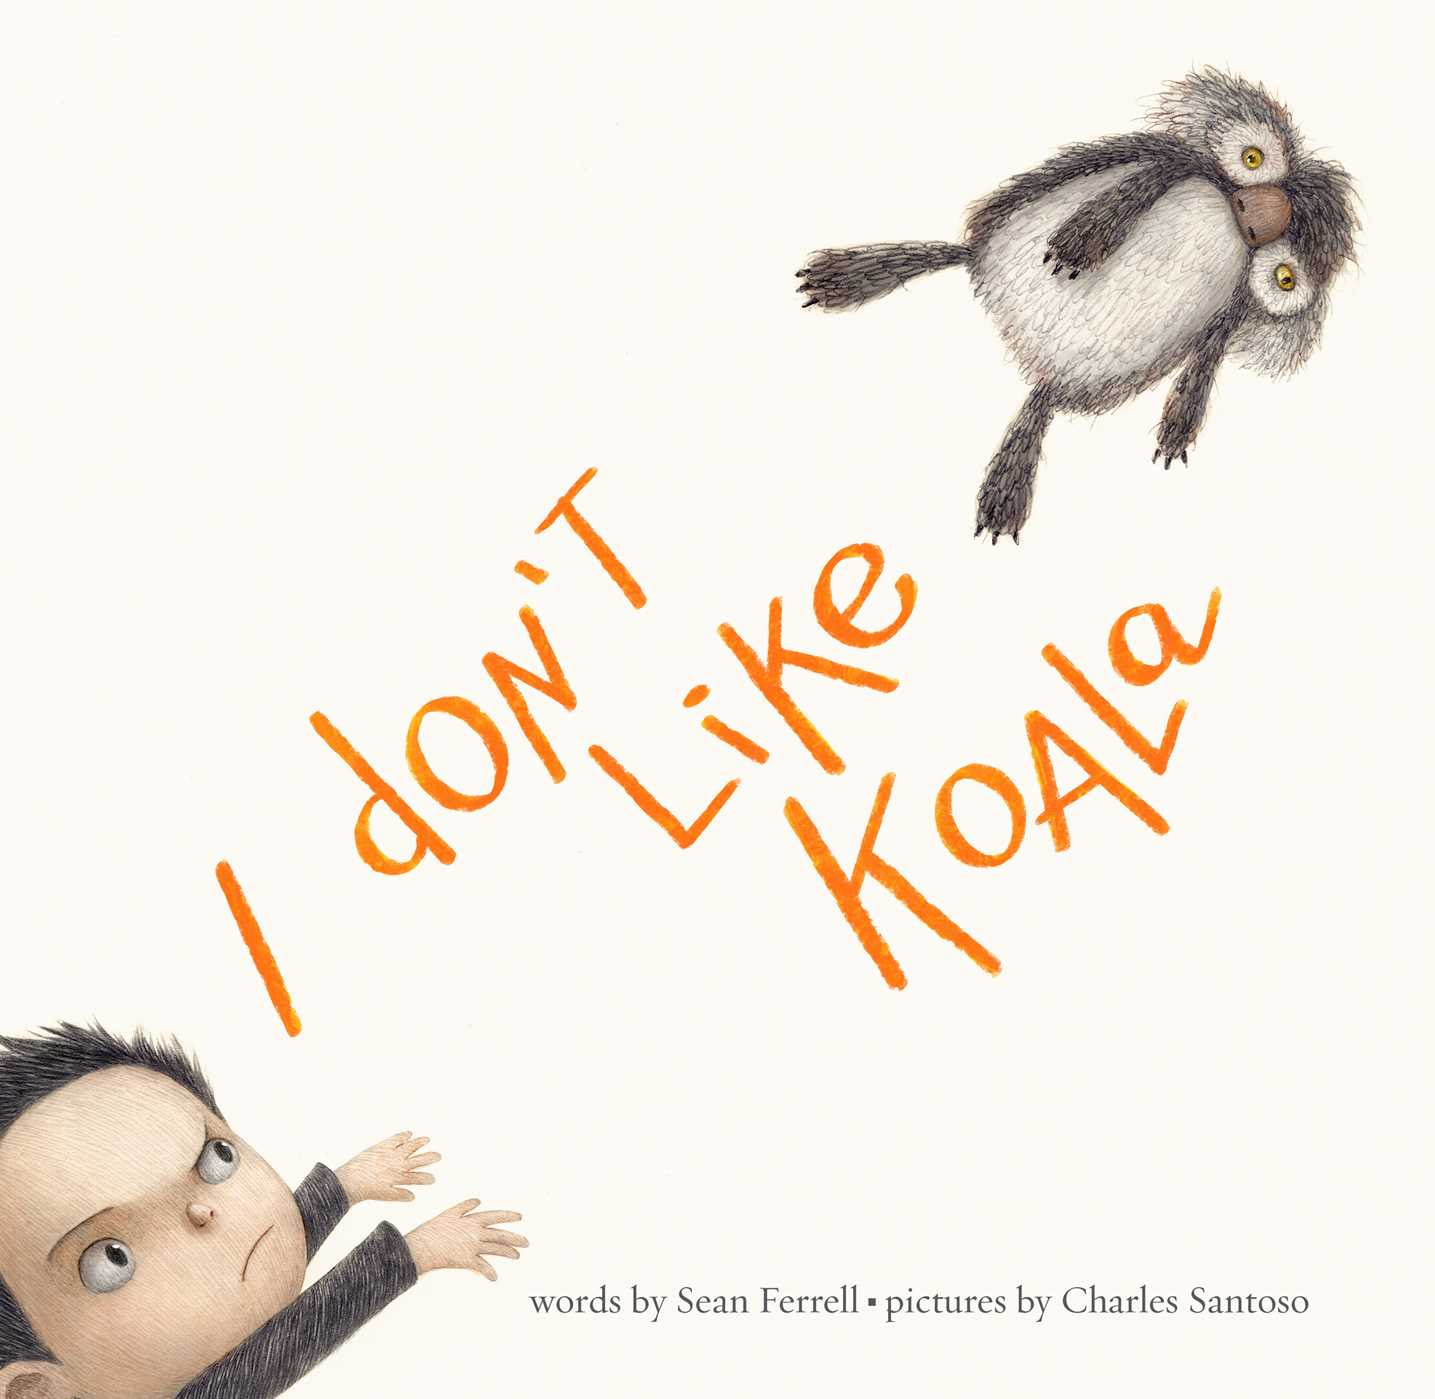 I don't like koala by Sean Ferrell book cover